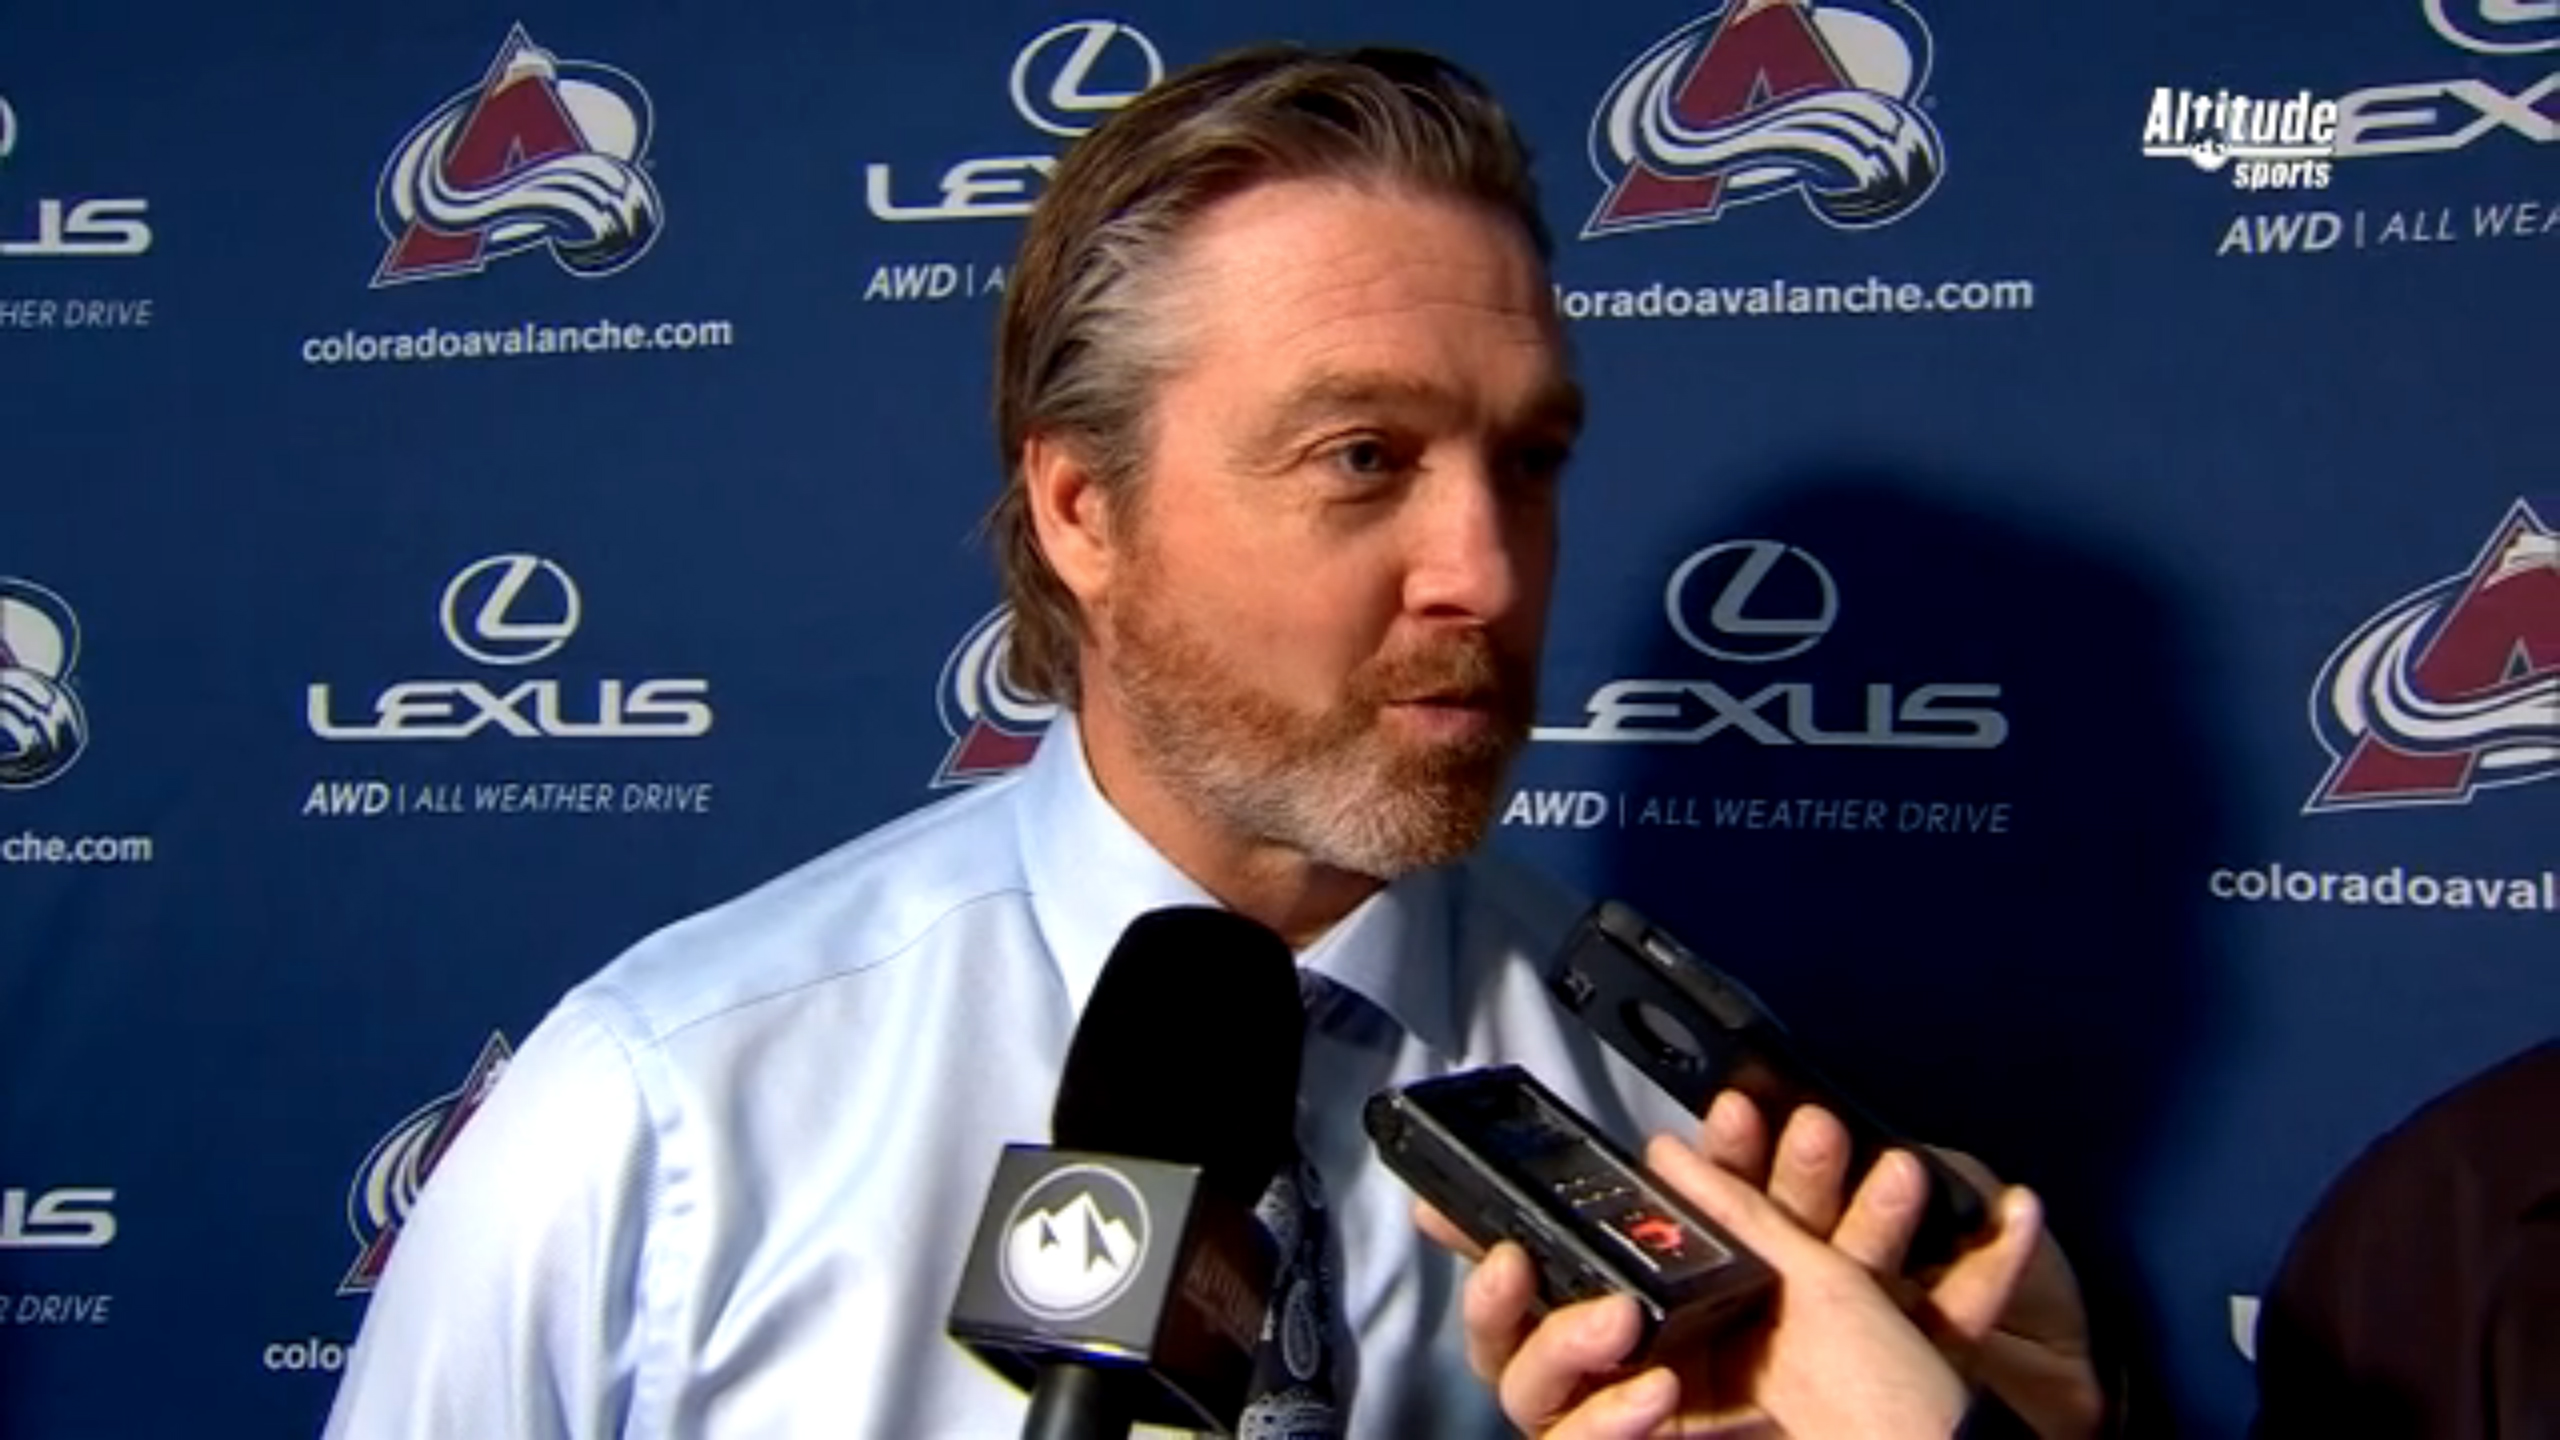 Patrick-Roy-Post-Game-111715.jpg